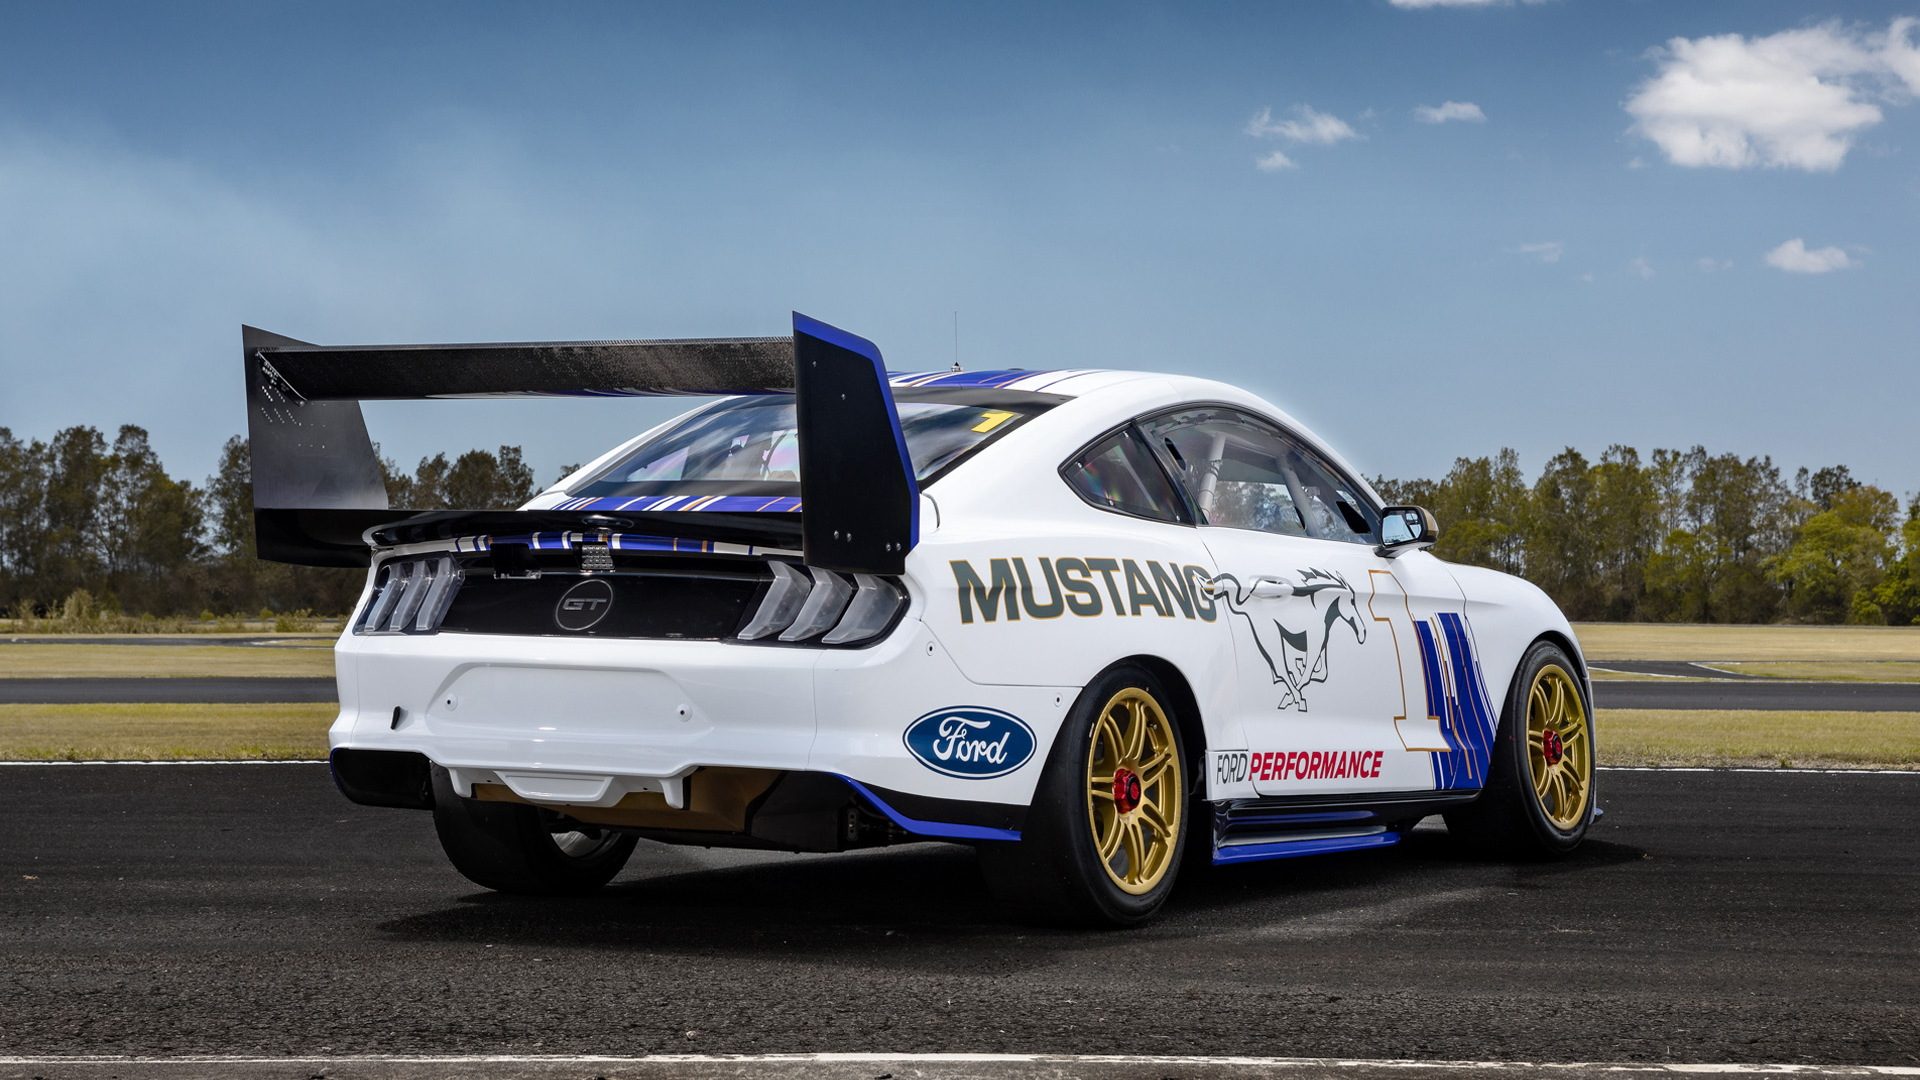 2019 Ford Mustang Australia Supercars race car